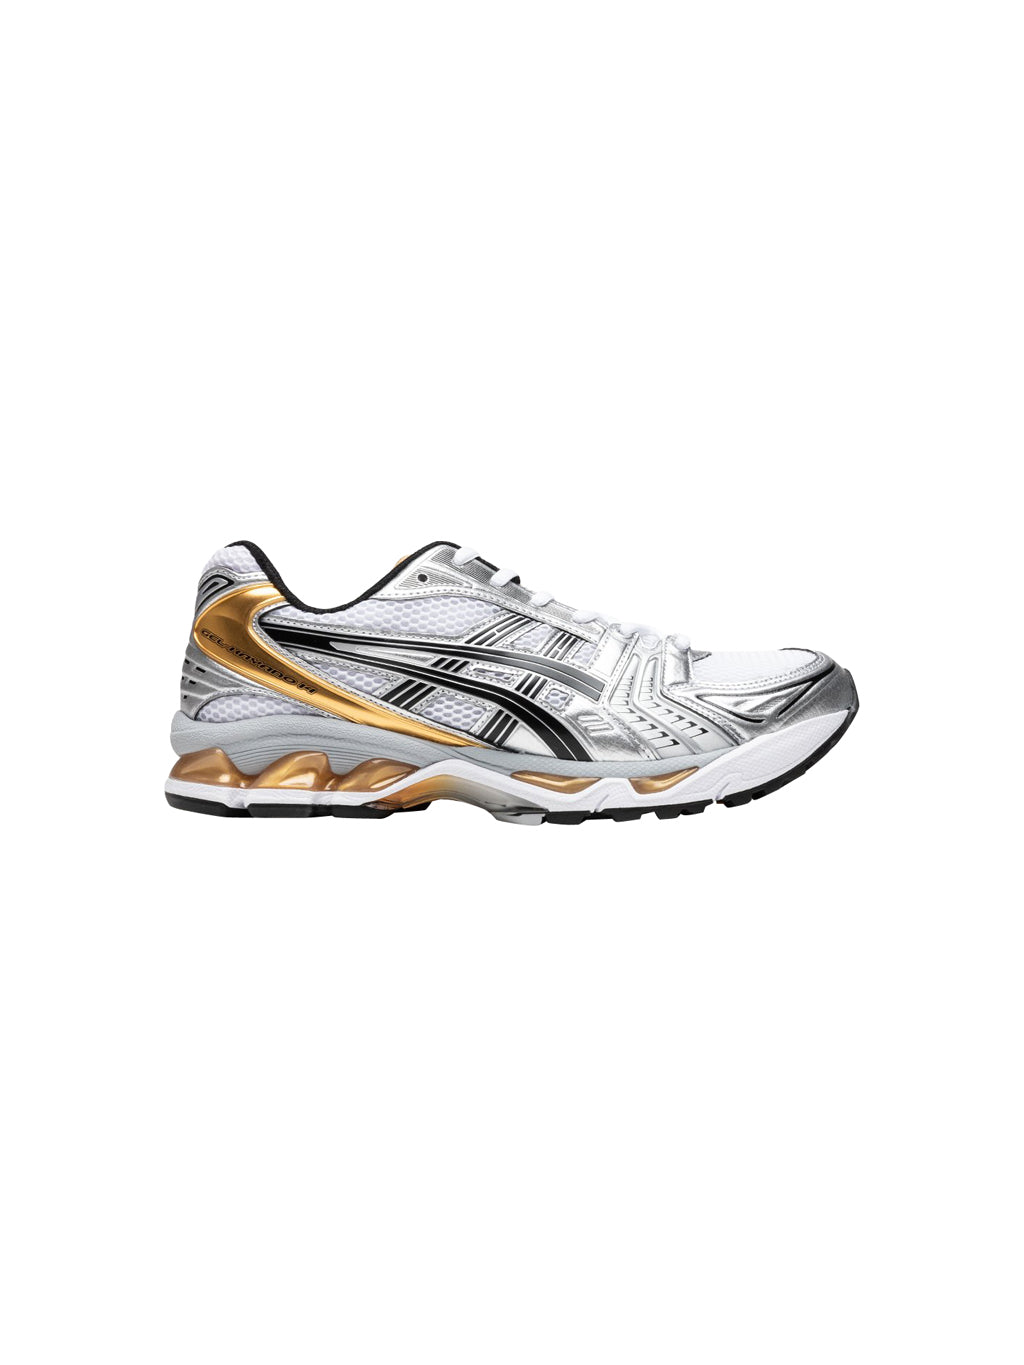 White & Pure Gold Gel-Kayano 14 Shoes